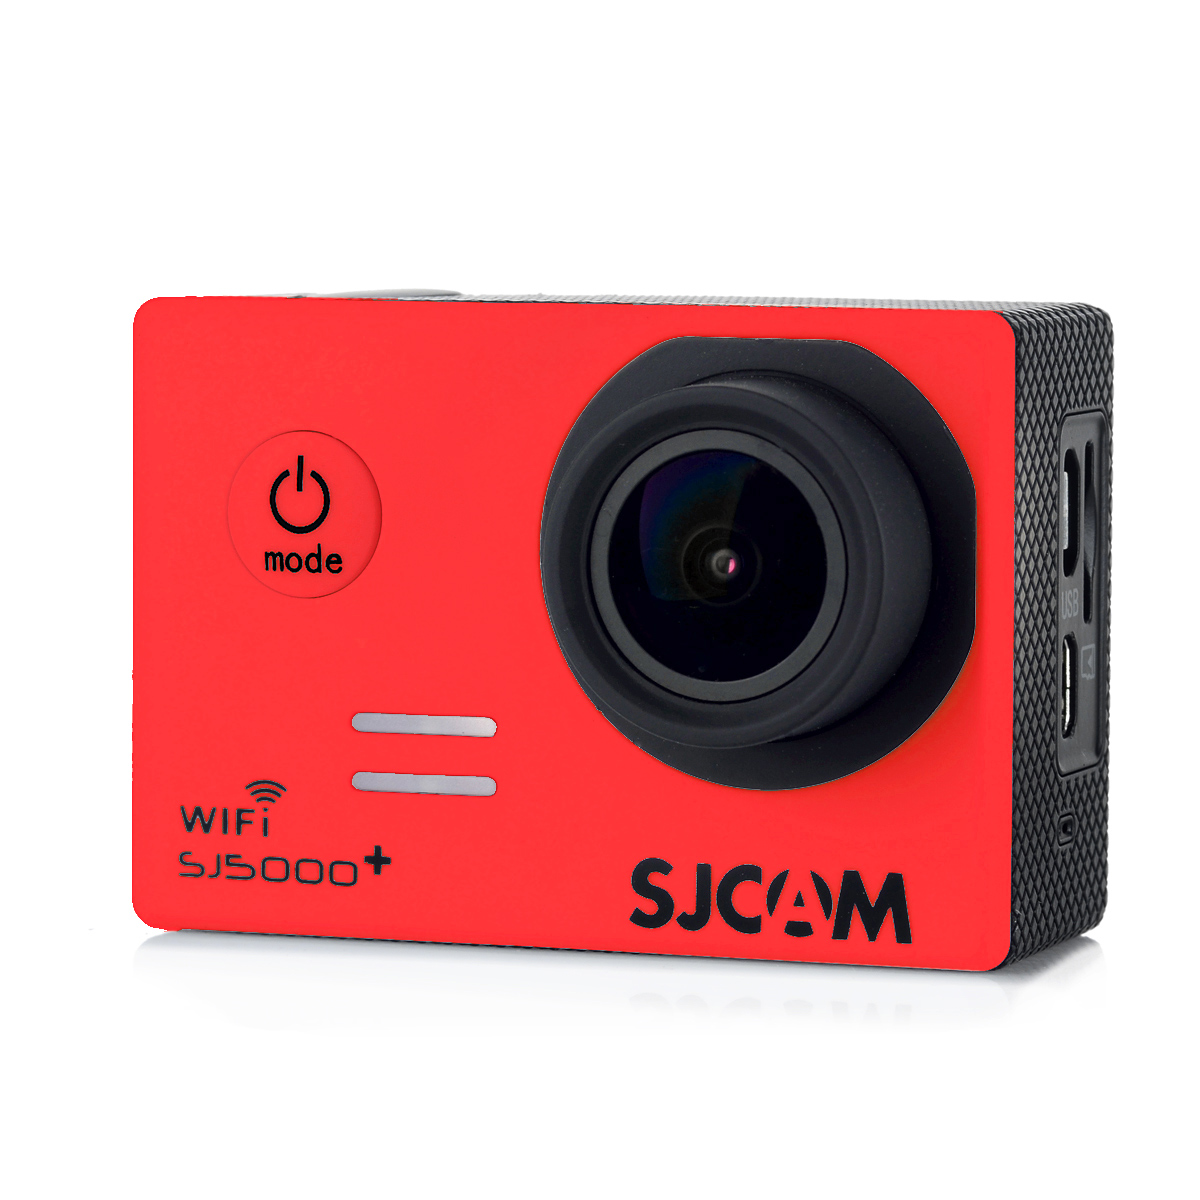 Original SJCAM SJ5000 Plus 16MP WiFi Action HD Camera Ambarella A7LS75 Waterproof Red